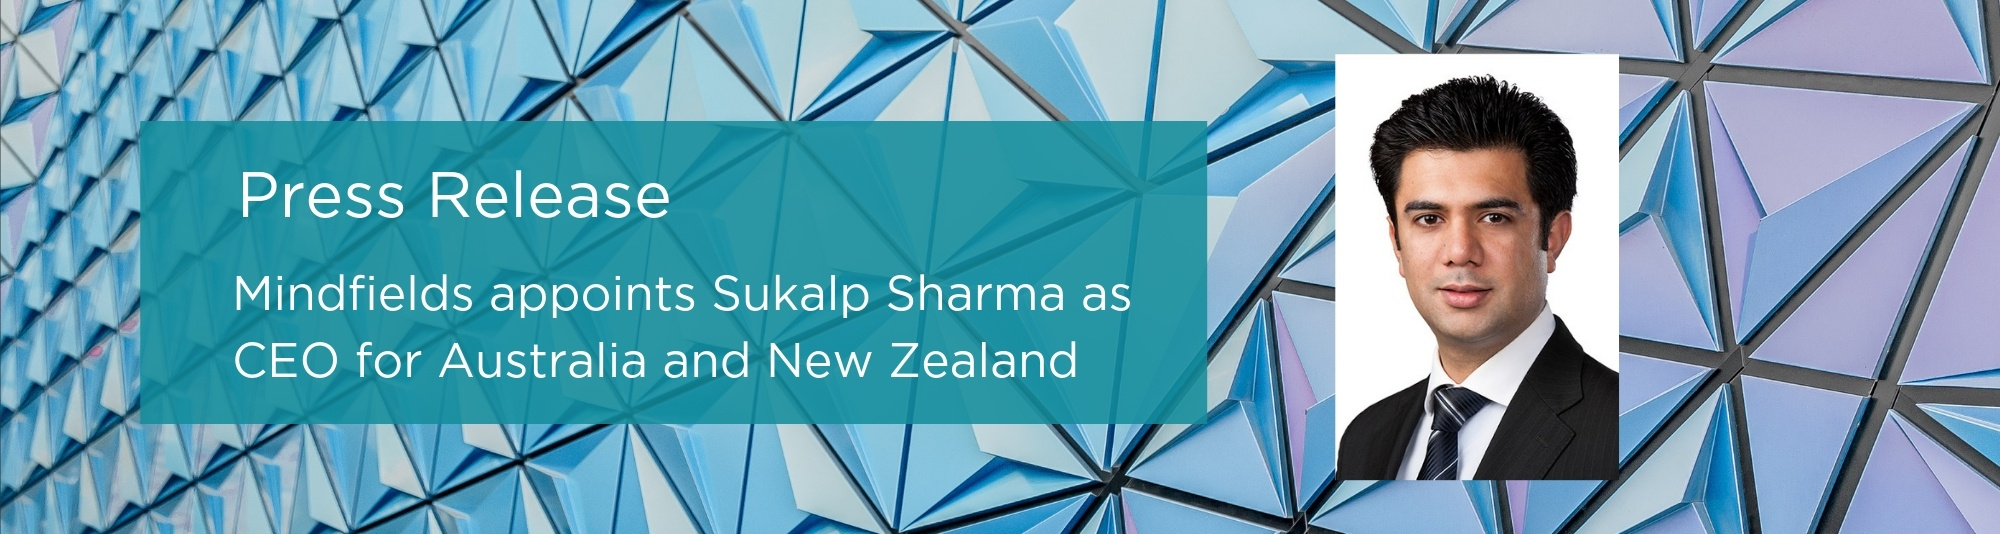 Mindfields appoints Sukalp Sharma as CEO for Australia and New Zealand